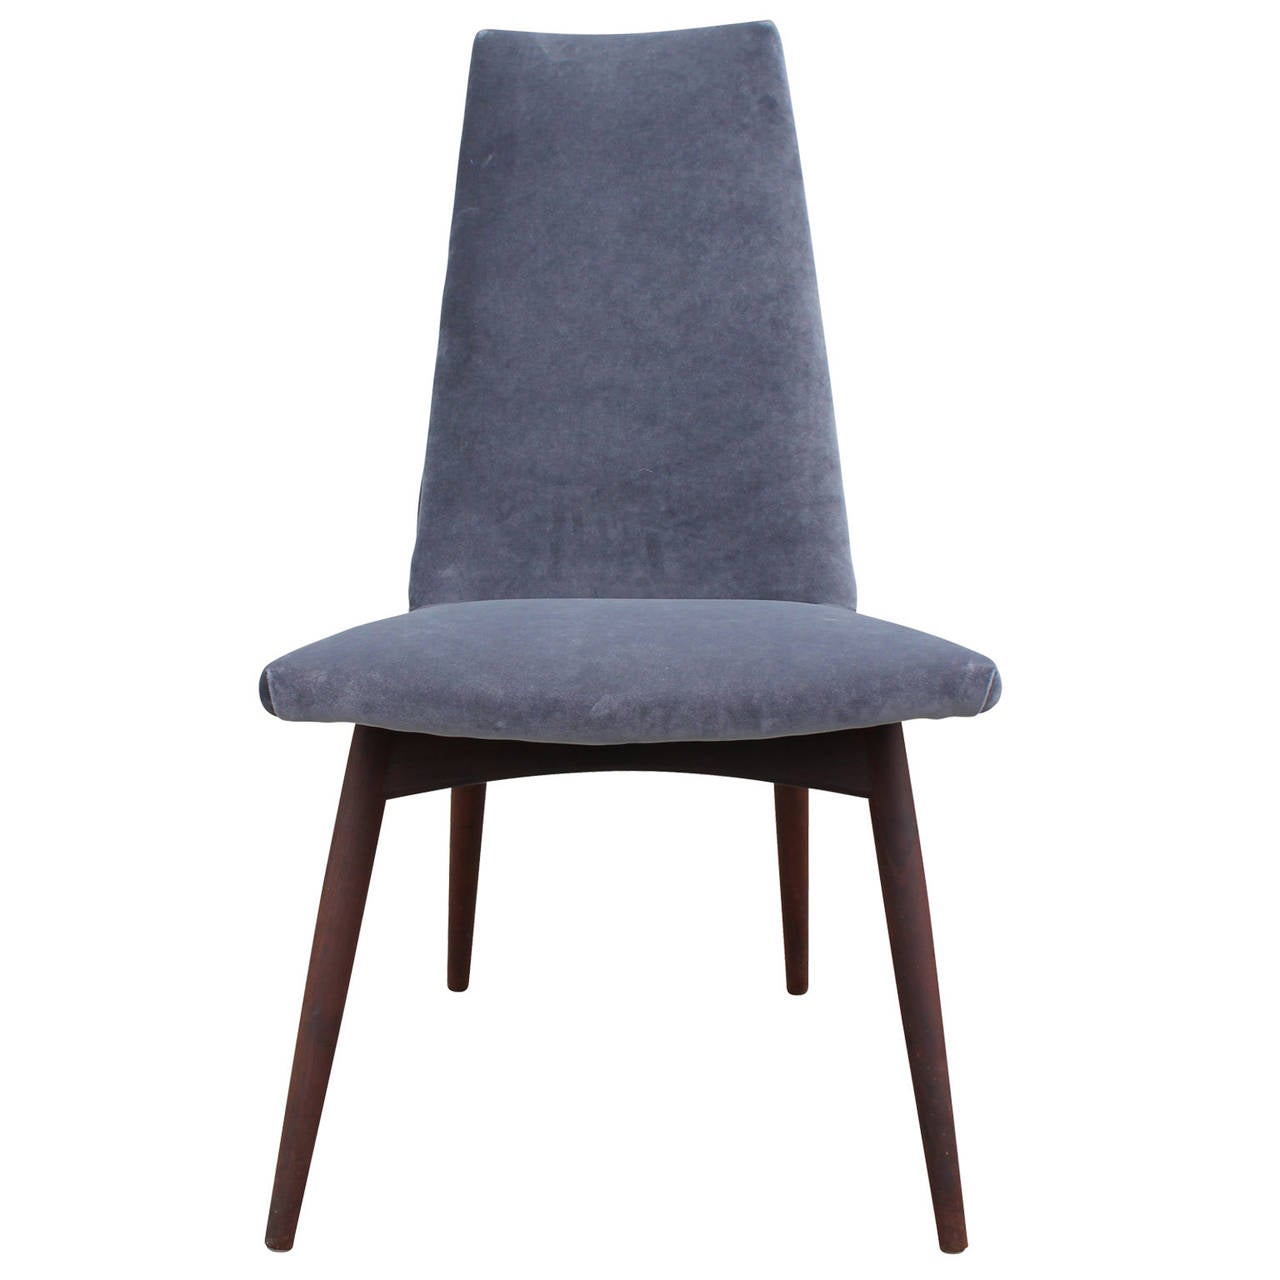 Set Of Four Adrian Pearsall Dining Chairs At 1stdibs